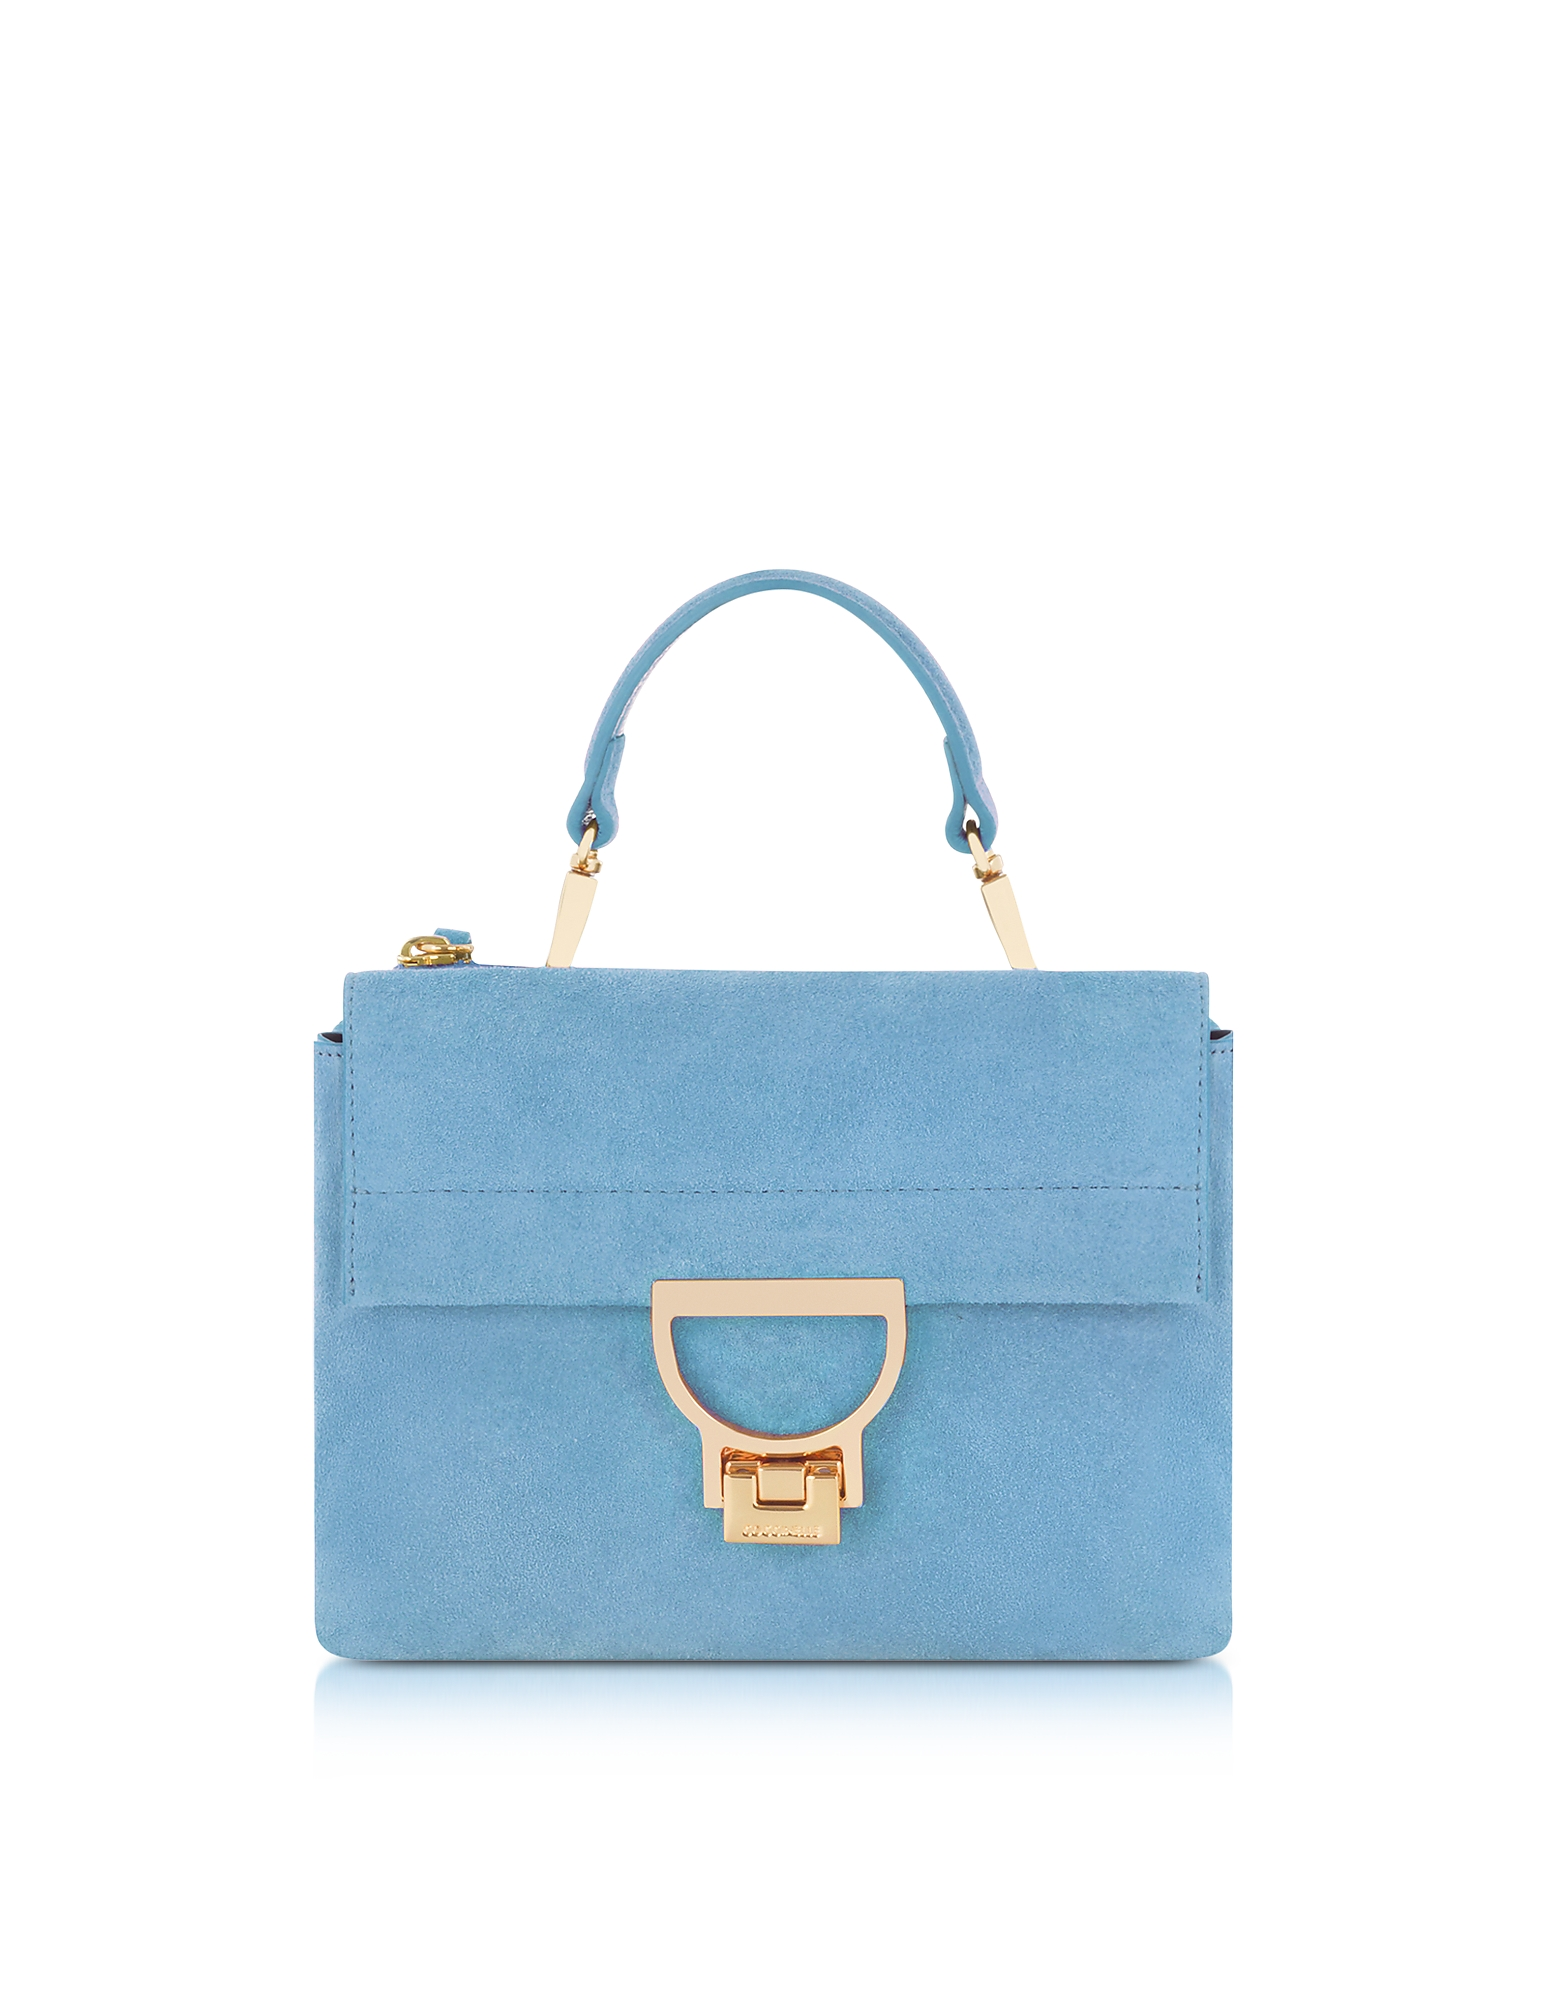 Coccinelle Handbags, Sky Blue Suede Arlettis Mini Bag w/Shoulder Strap